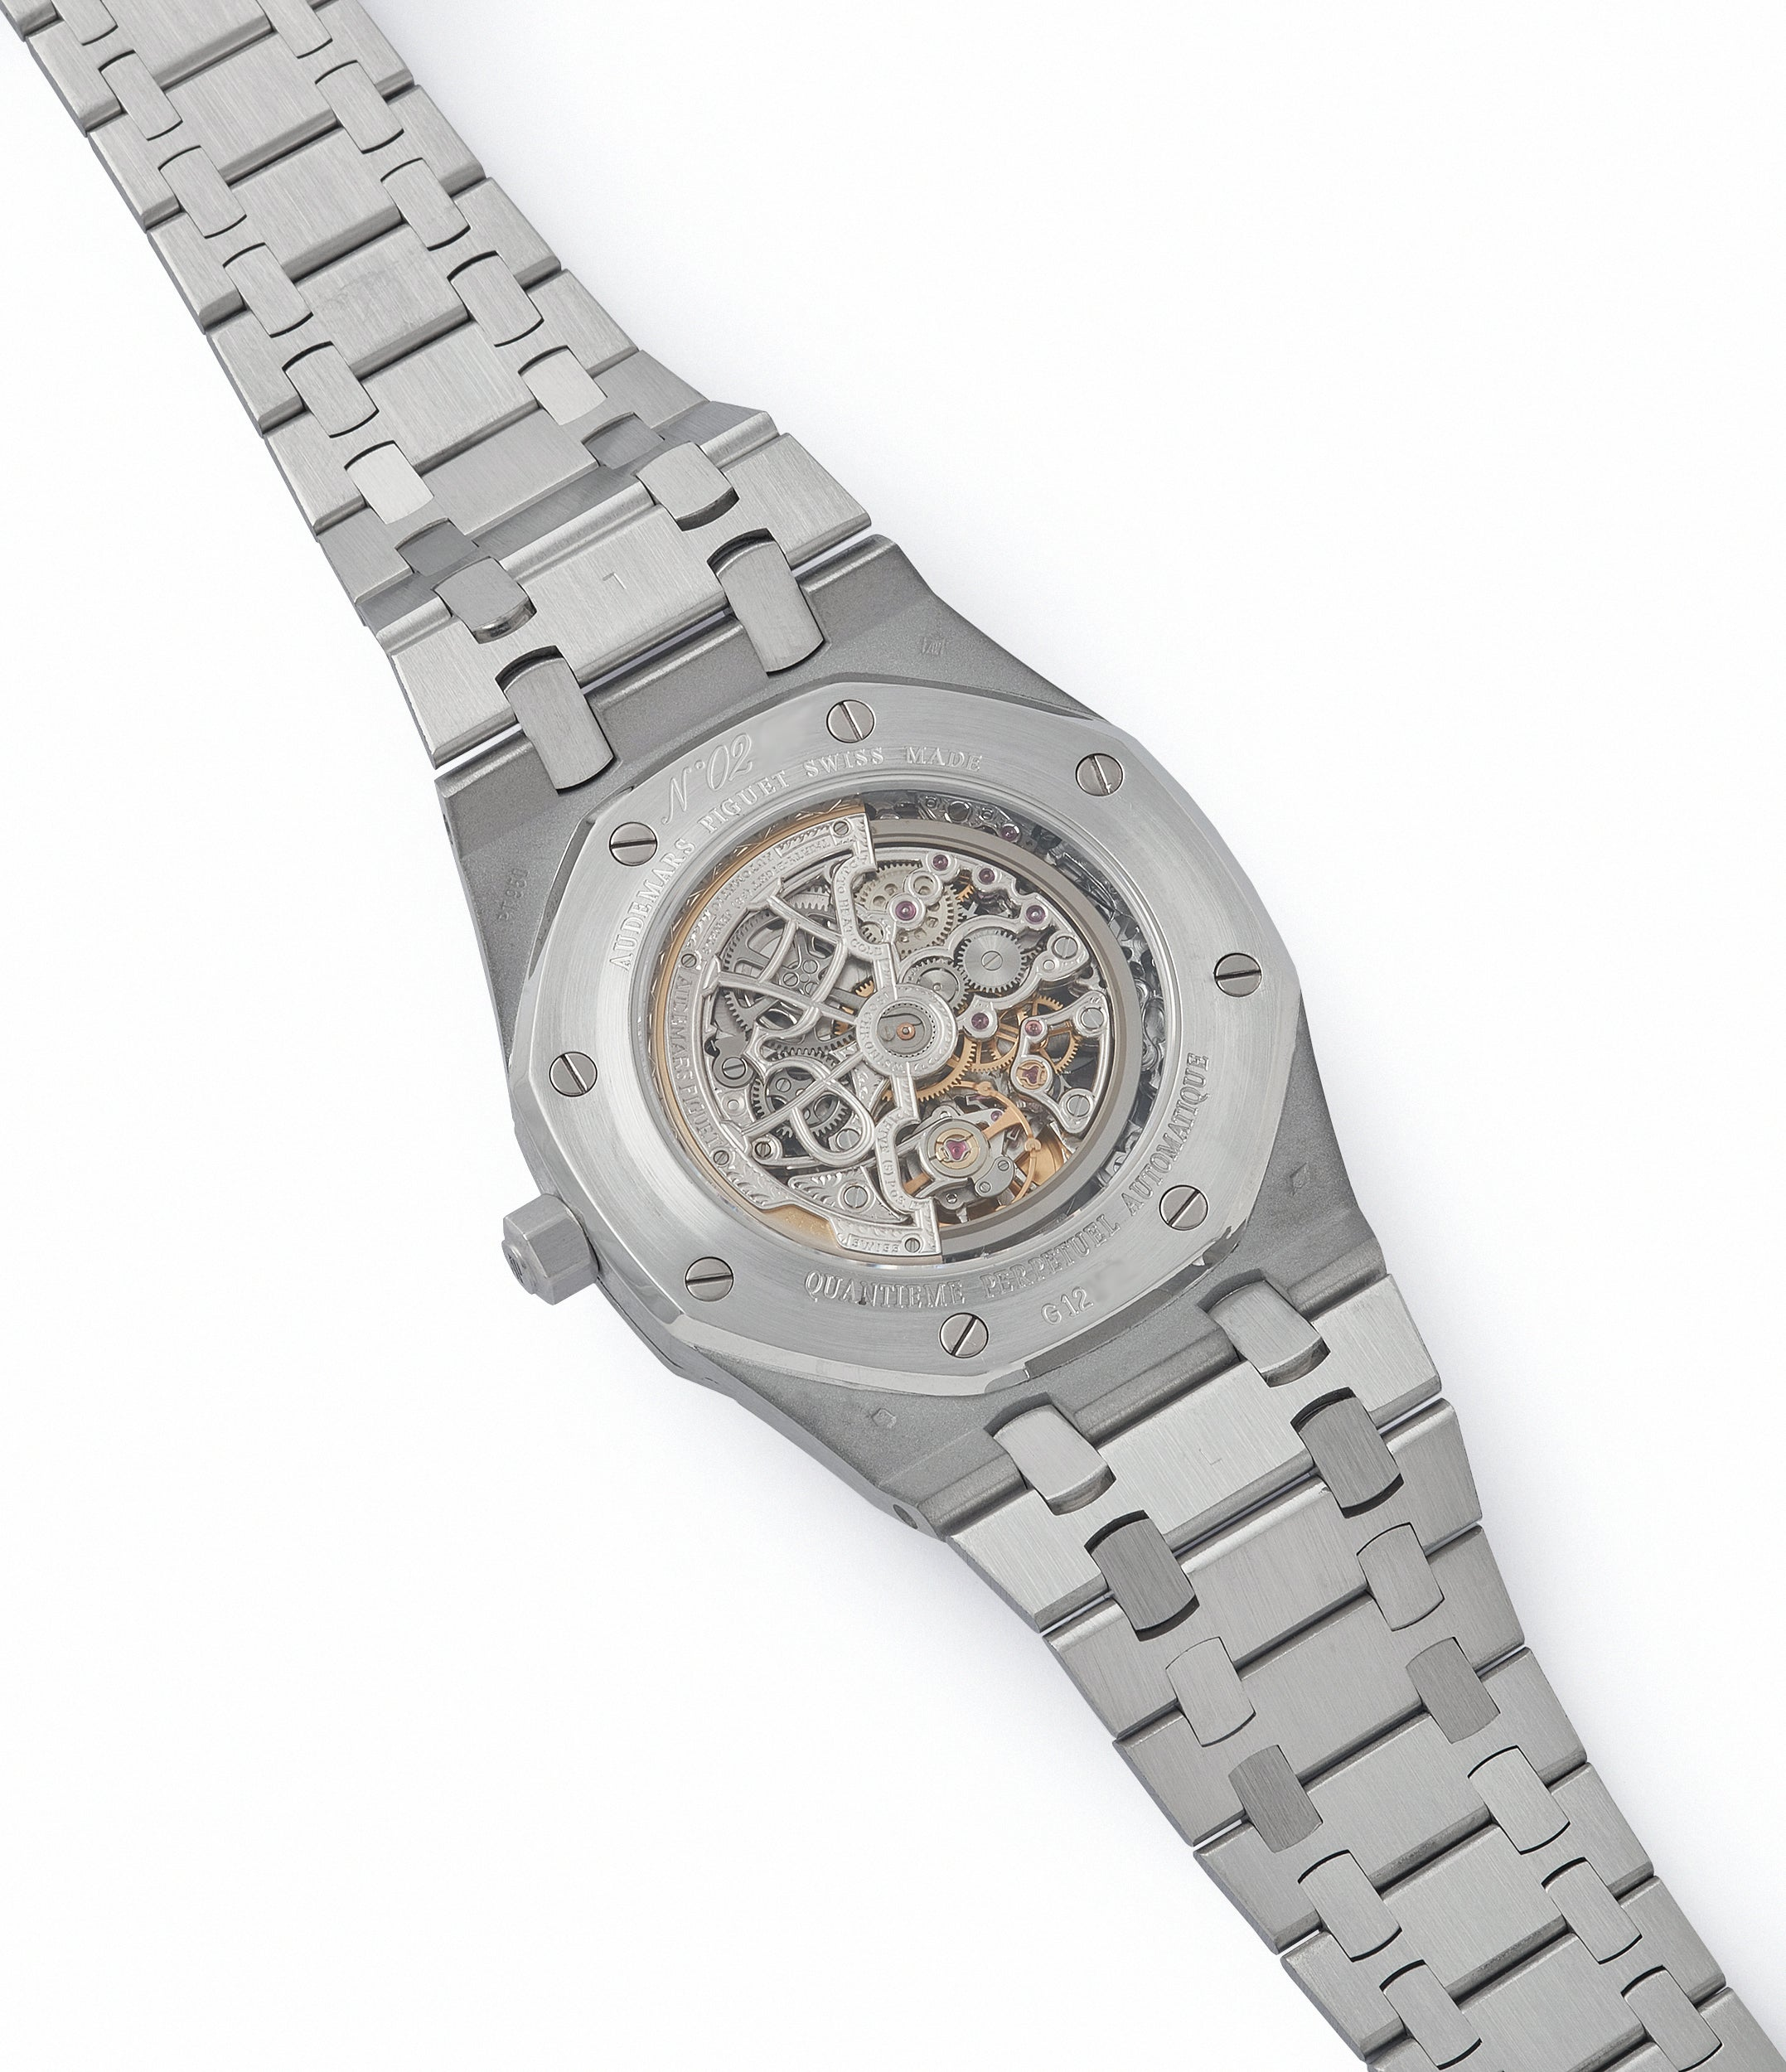 25829PT Audemars Piguet Royal Oak perpetual calendar skeleton dial platinum full set pre-owned watch for sale online at A Collected Man London UK specialist of rare watches